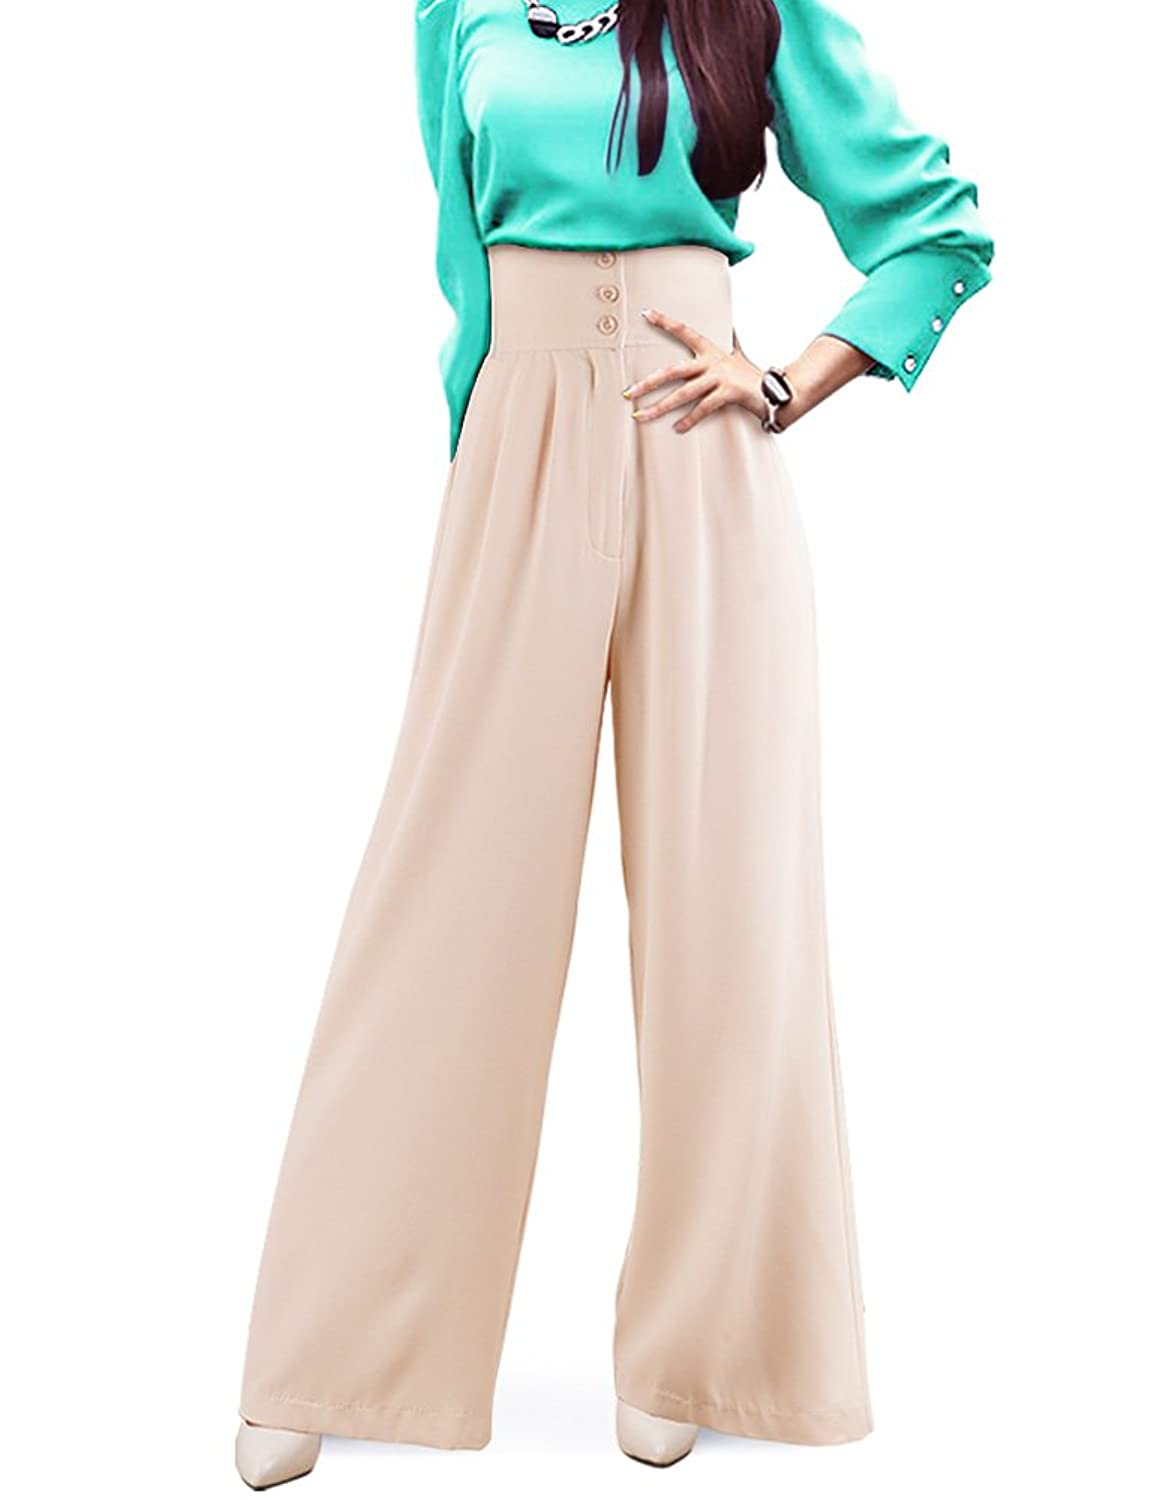 1940s Swing Pants & Sailor Trousers- Wide Leg, High Waist DELUXSEY Silhouette-Lengthening High Waist Wide Leg Pants Palazzo Pants 4 Women $34.99 AT vintagedancer.com